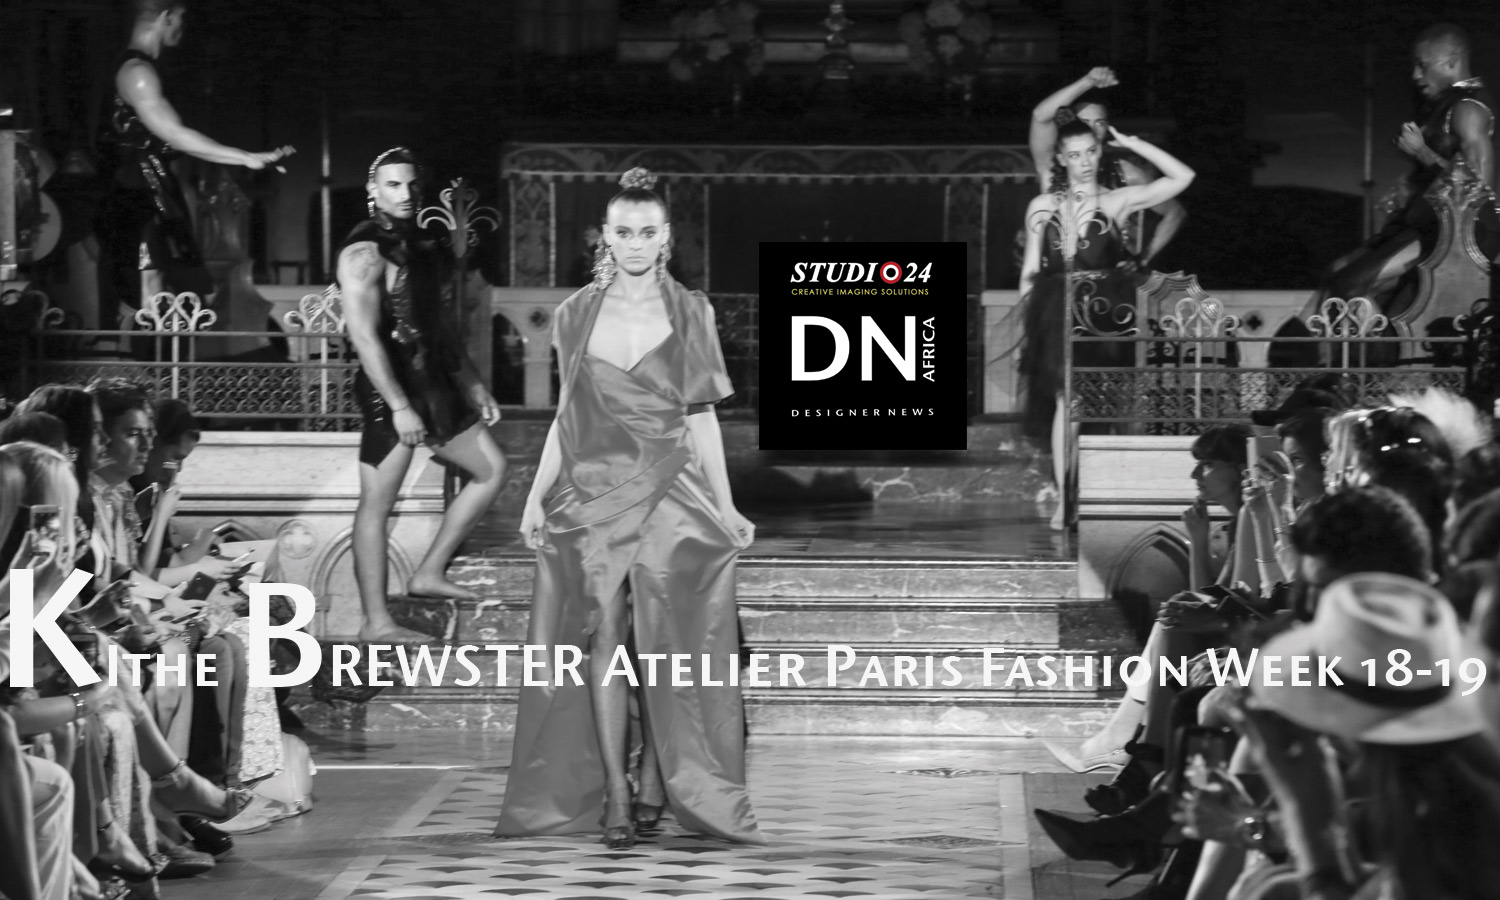 """AFRICAN FASHION STYLE MAGAZINE - Kithe Brewster's """"Art of Draping"""" PFW 18 - Media Partner DN MAG, DN AFRICA-STUDIO 24 NIGERIA - TOTEM FASHION"""